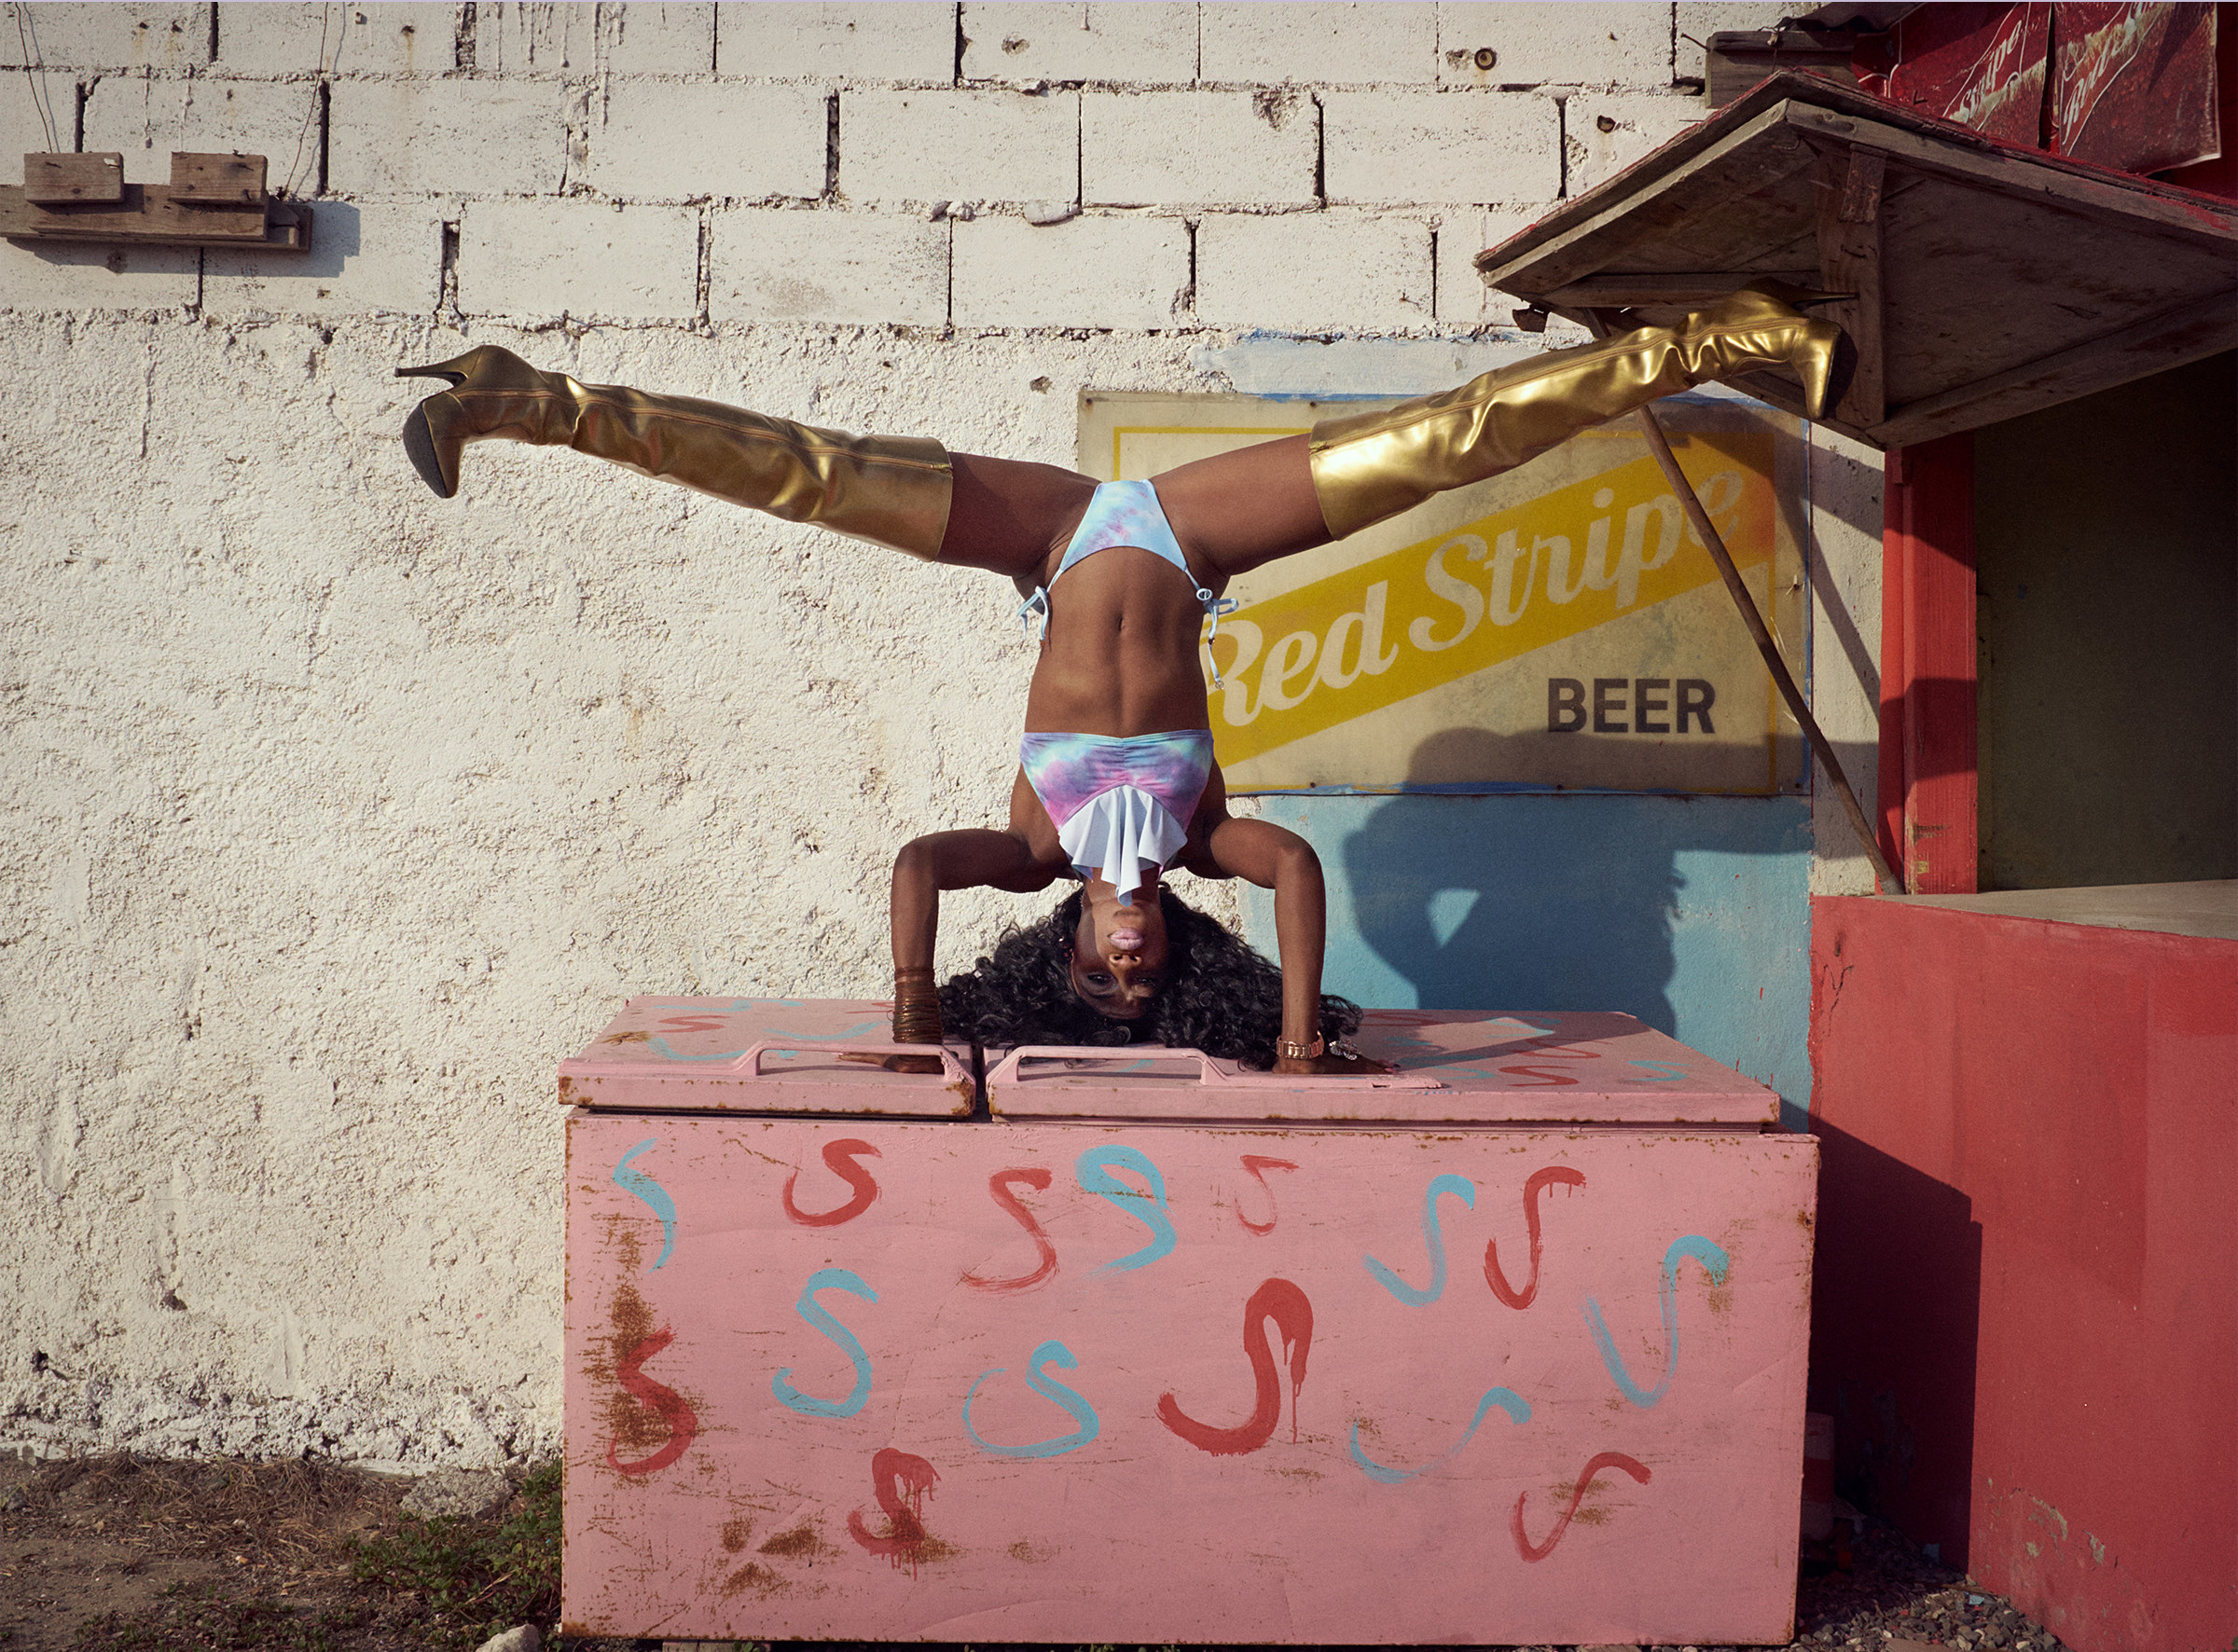 A woman in gold boots doing a handstand on a pink box